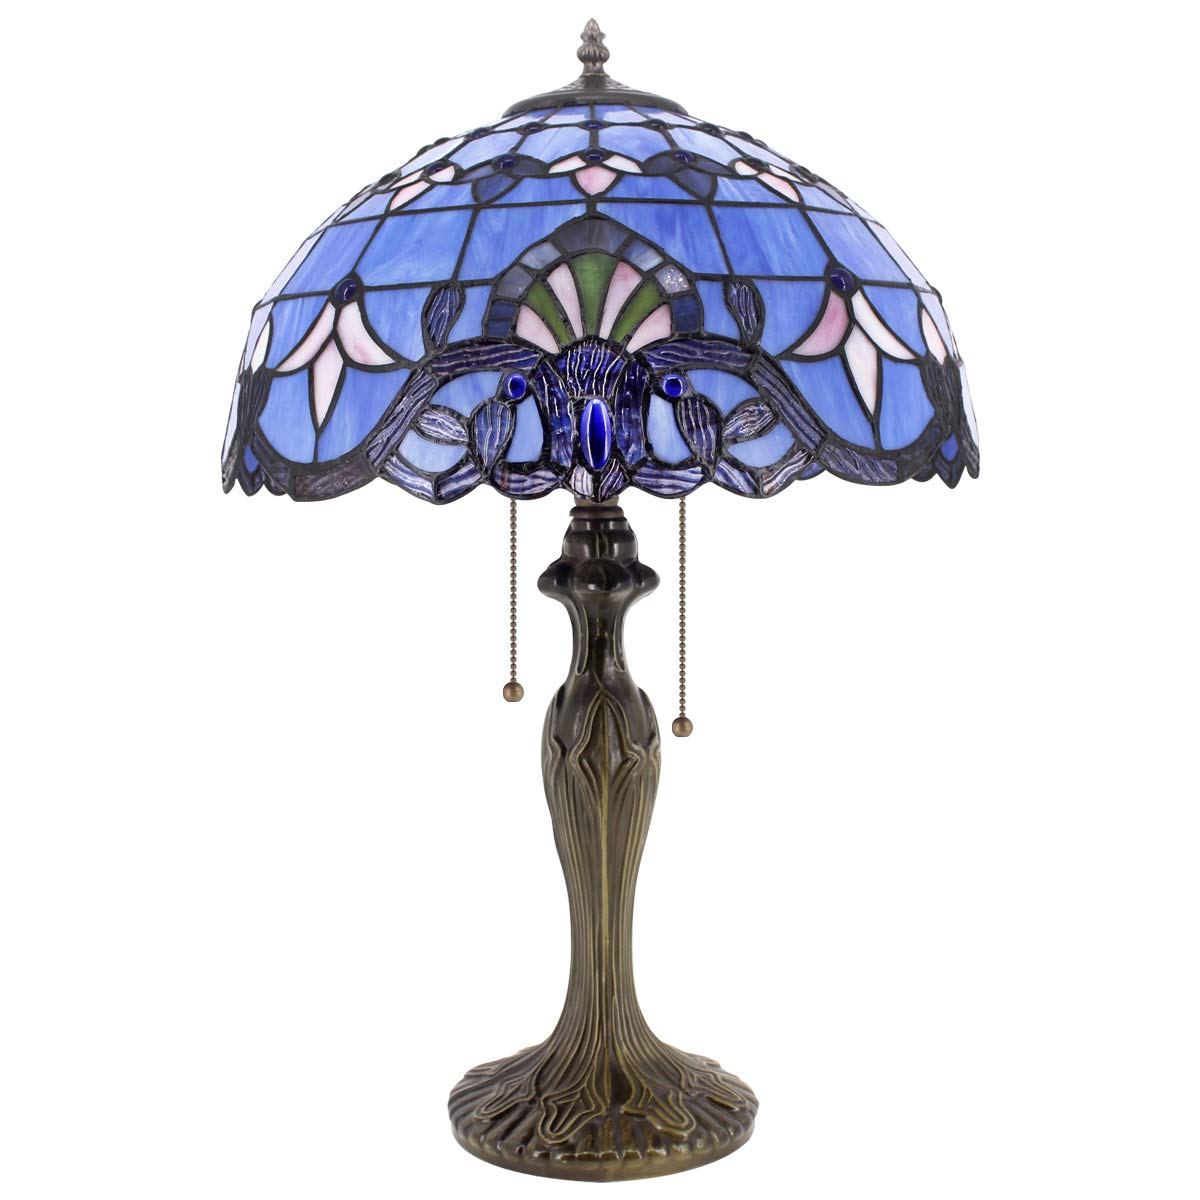 Tiffany Lamp Stained Glass Desk Lamps 24 Inch Tall Blue Purple Baroque Lavender Shade 2 Light Antique Base for Living Room Bedroom Desk Beside Coffee Table Dresser Set S003C WERFACTORY